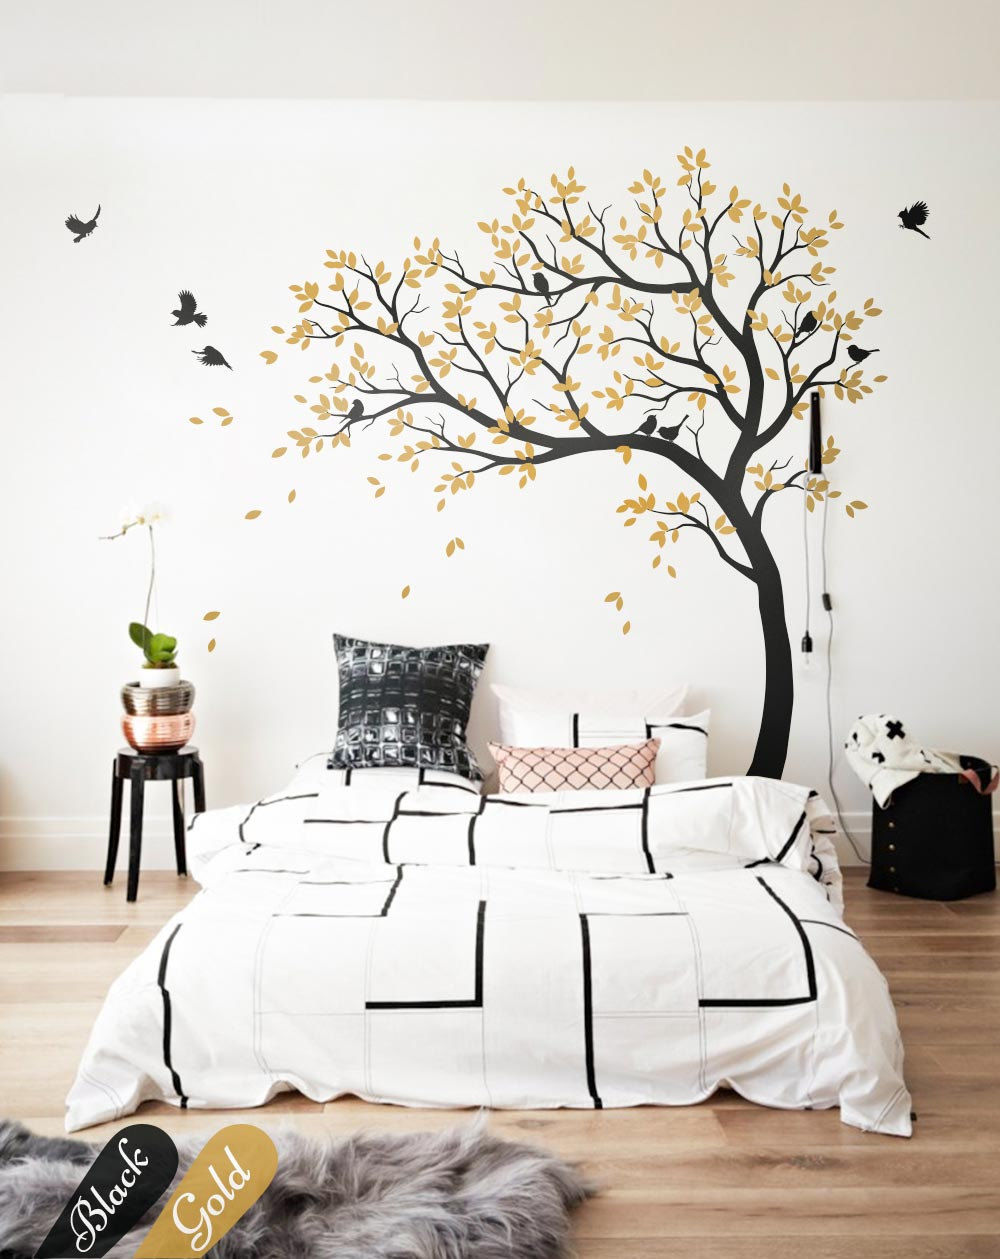 Large Black Tree Nursery Wall Design With Cute Birds And Leaves, Baby Room  Decor DIY Removable Wallpaper Size 68.5*83.7inches In Wall Stickers From  Home ...